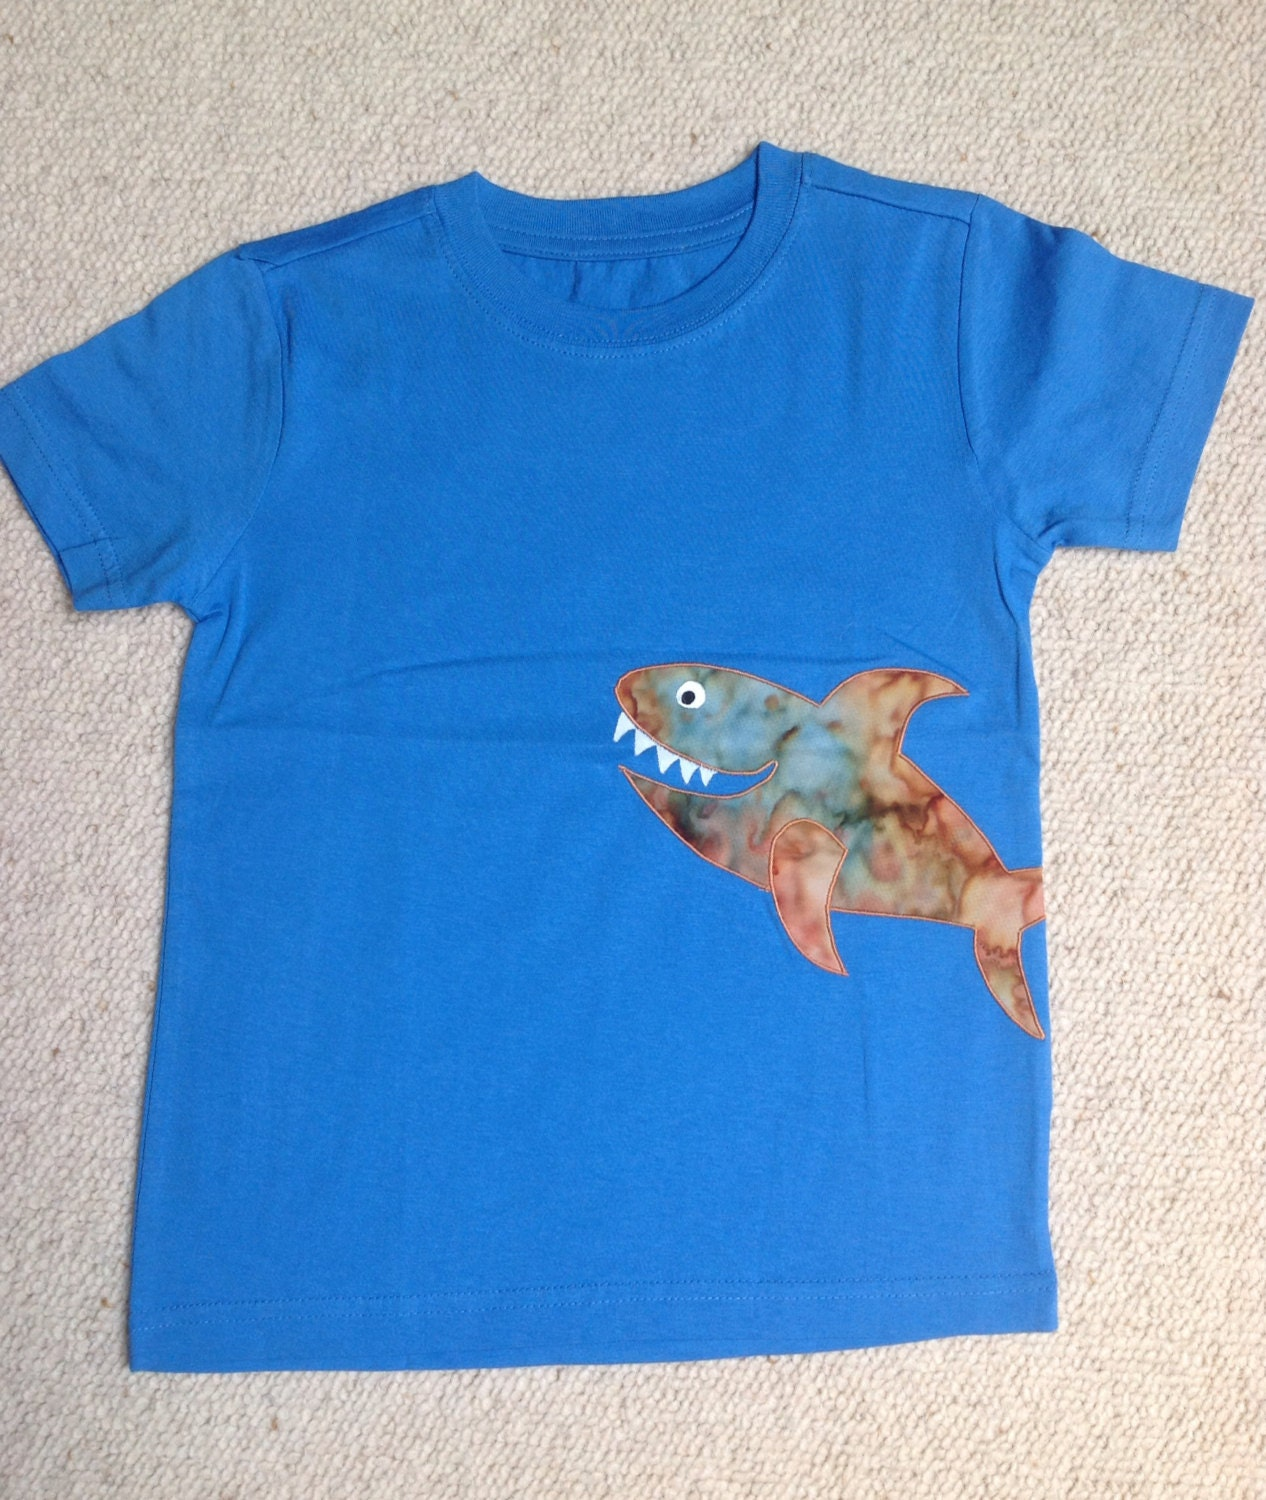 Boys blue applique shark t shirt 4 5 years for Applique shirts for sale